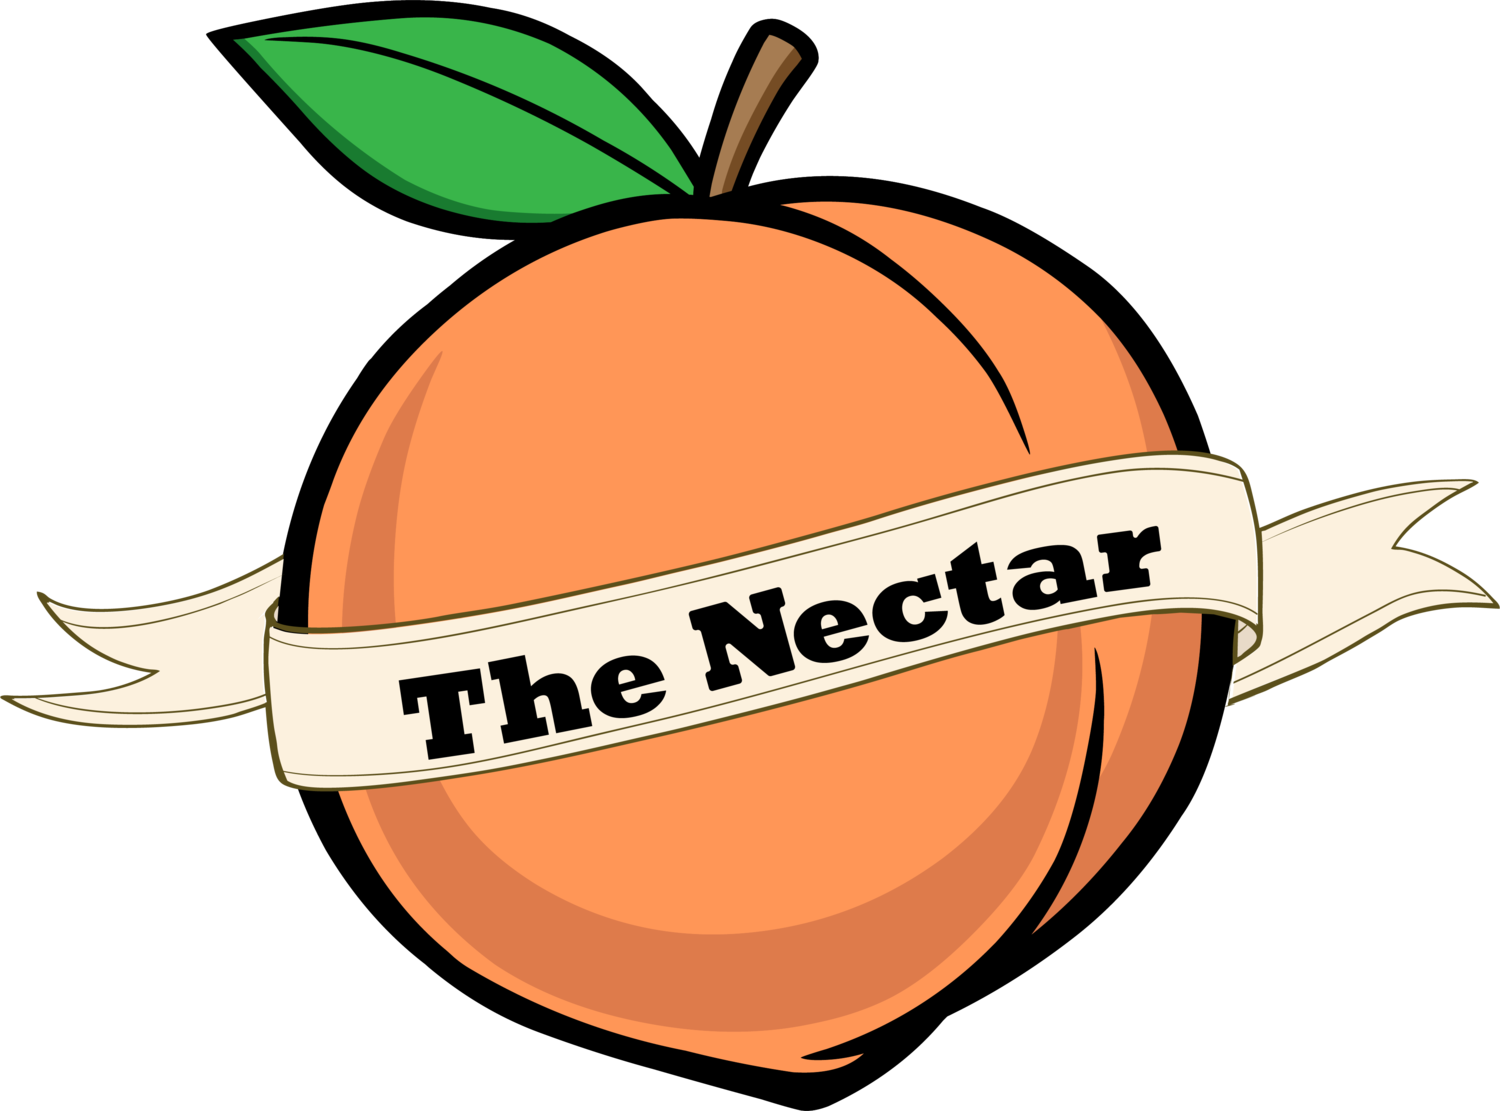 Nectar logo clipart banner transparent download Nectar clipart clipart images gallery for free download ... banner transparent download